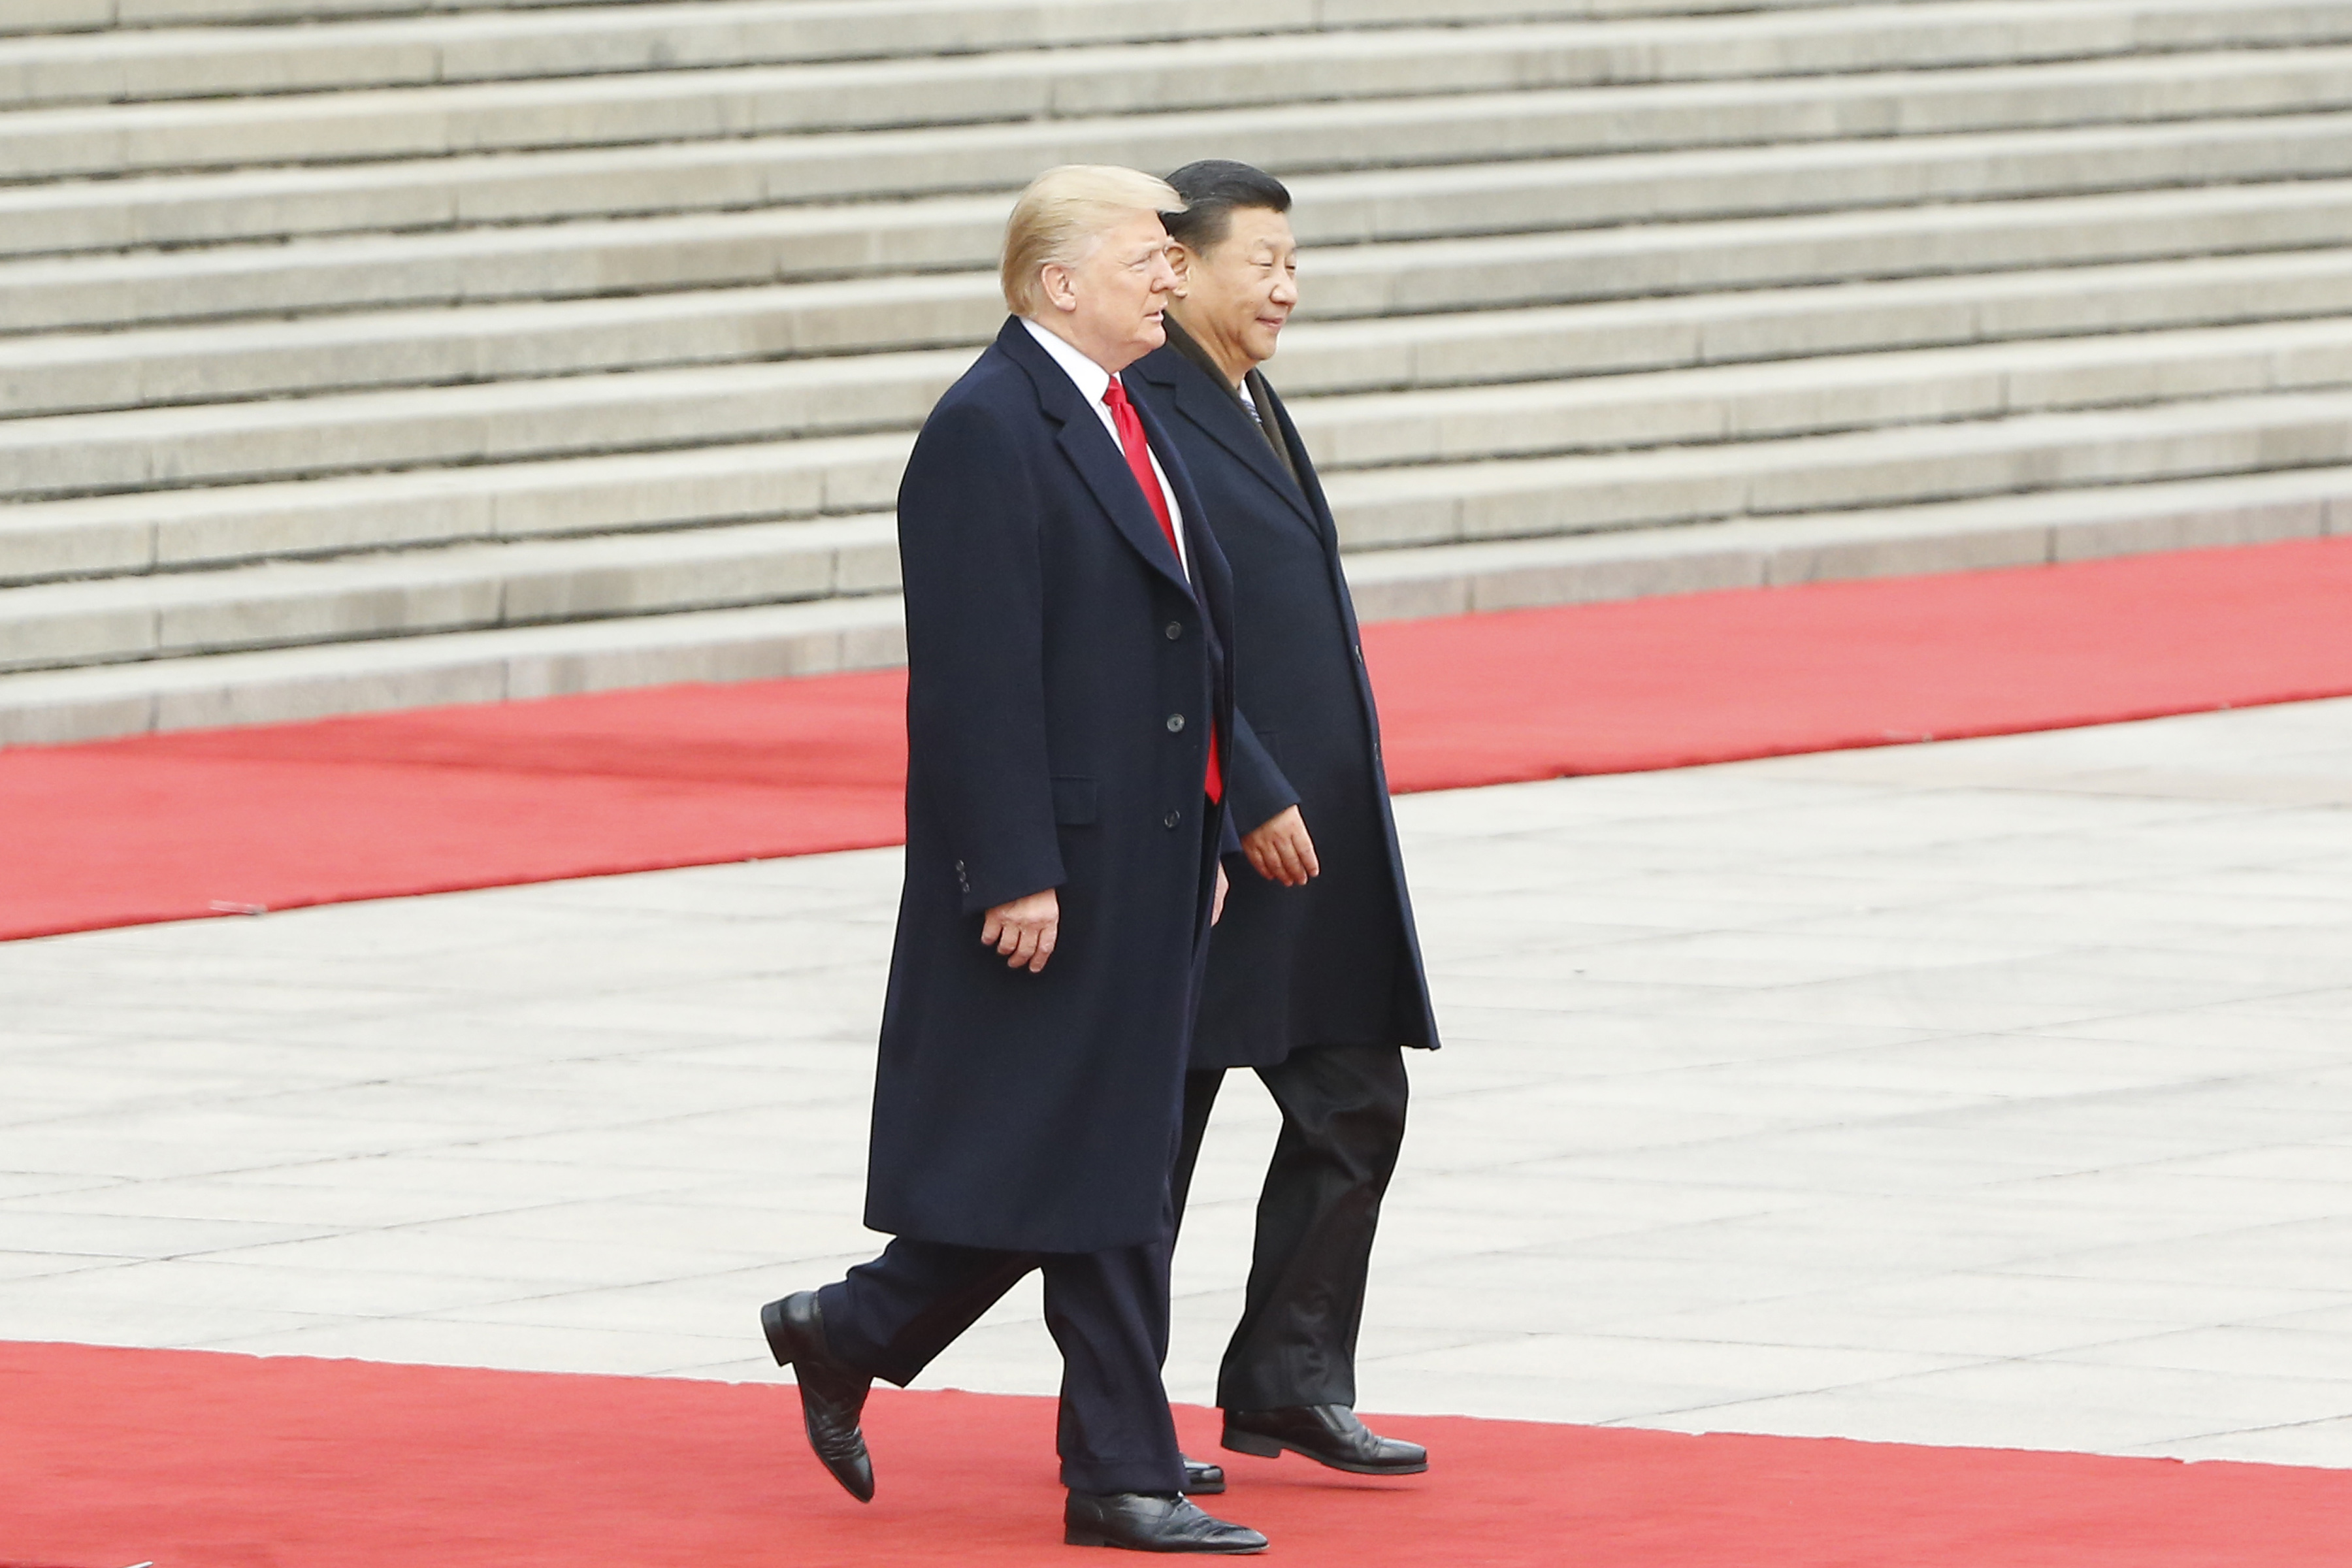 Chinese President Xi Jinping and US President Donald Trump in Beijing on November 9, 2017.